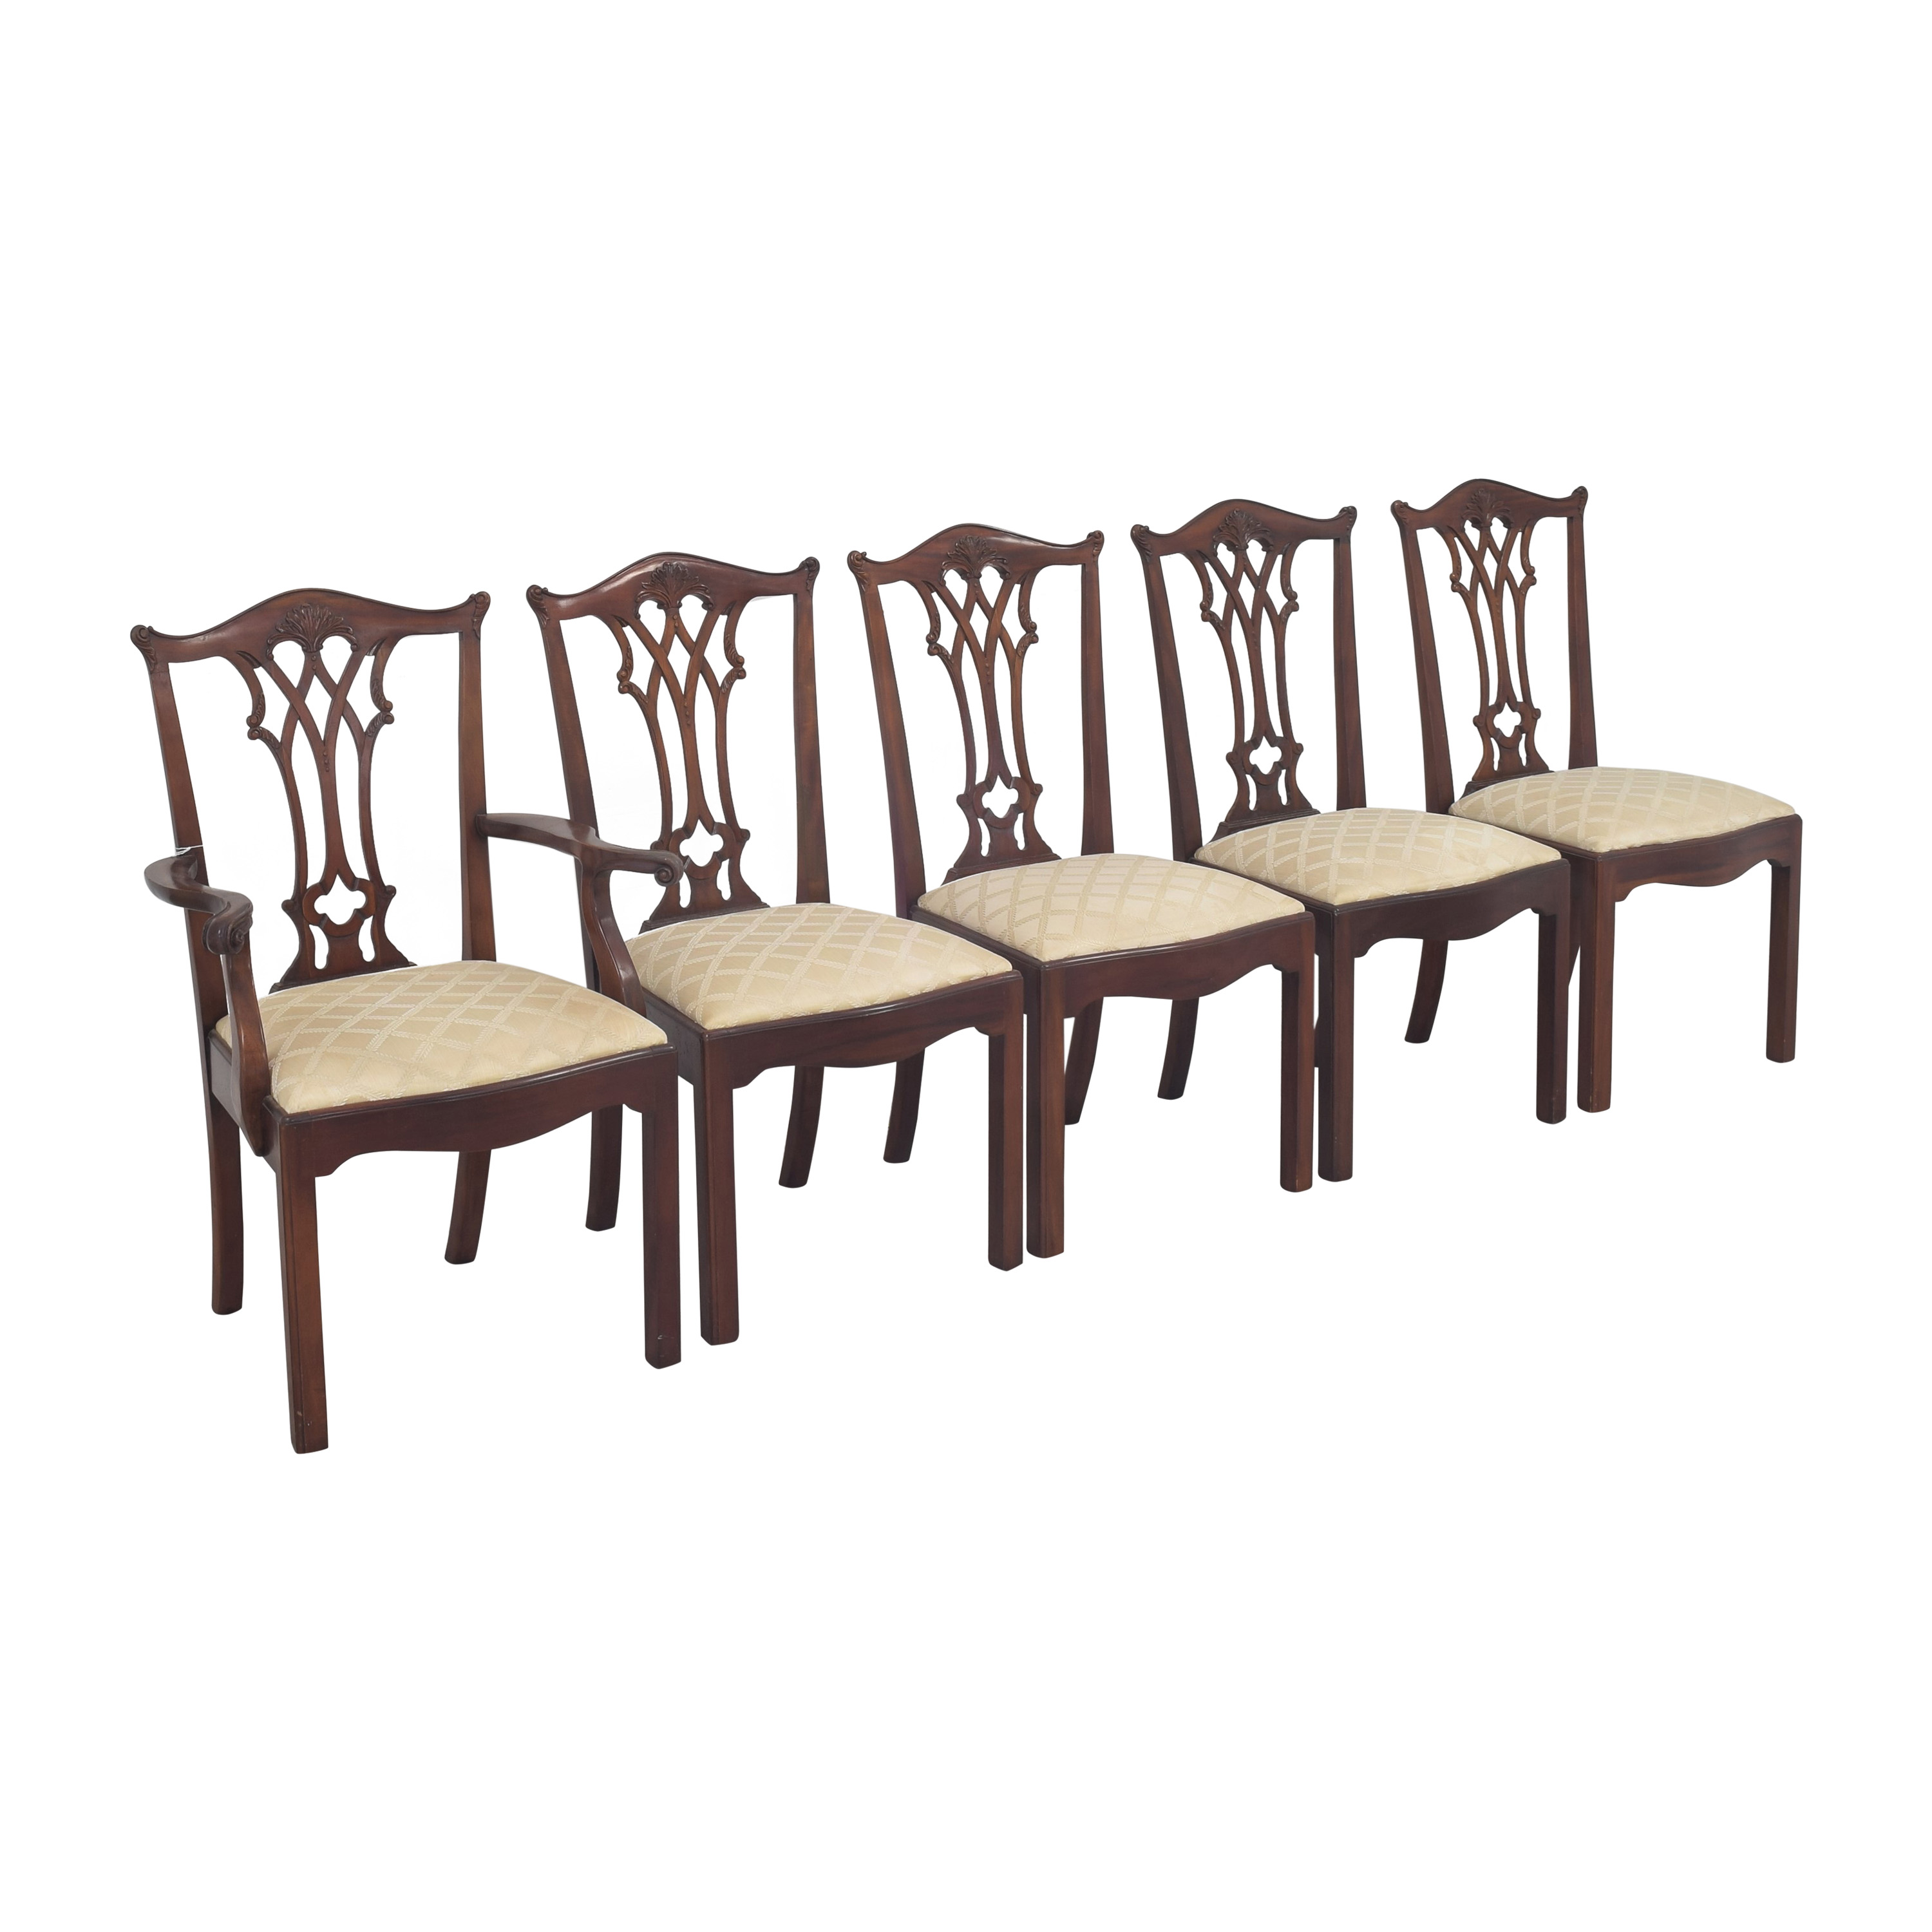 buy Maitland-Smith Maitland-Smith Connecticut Dining Chairs online